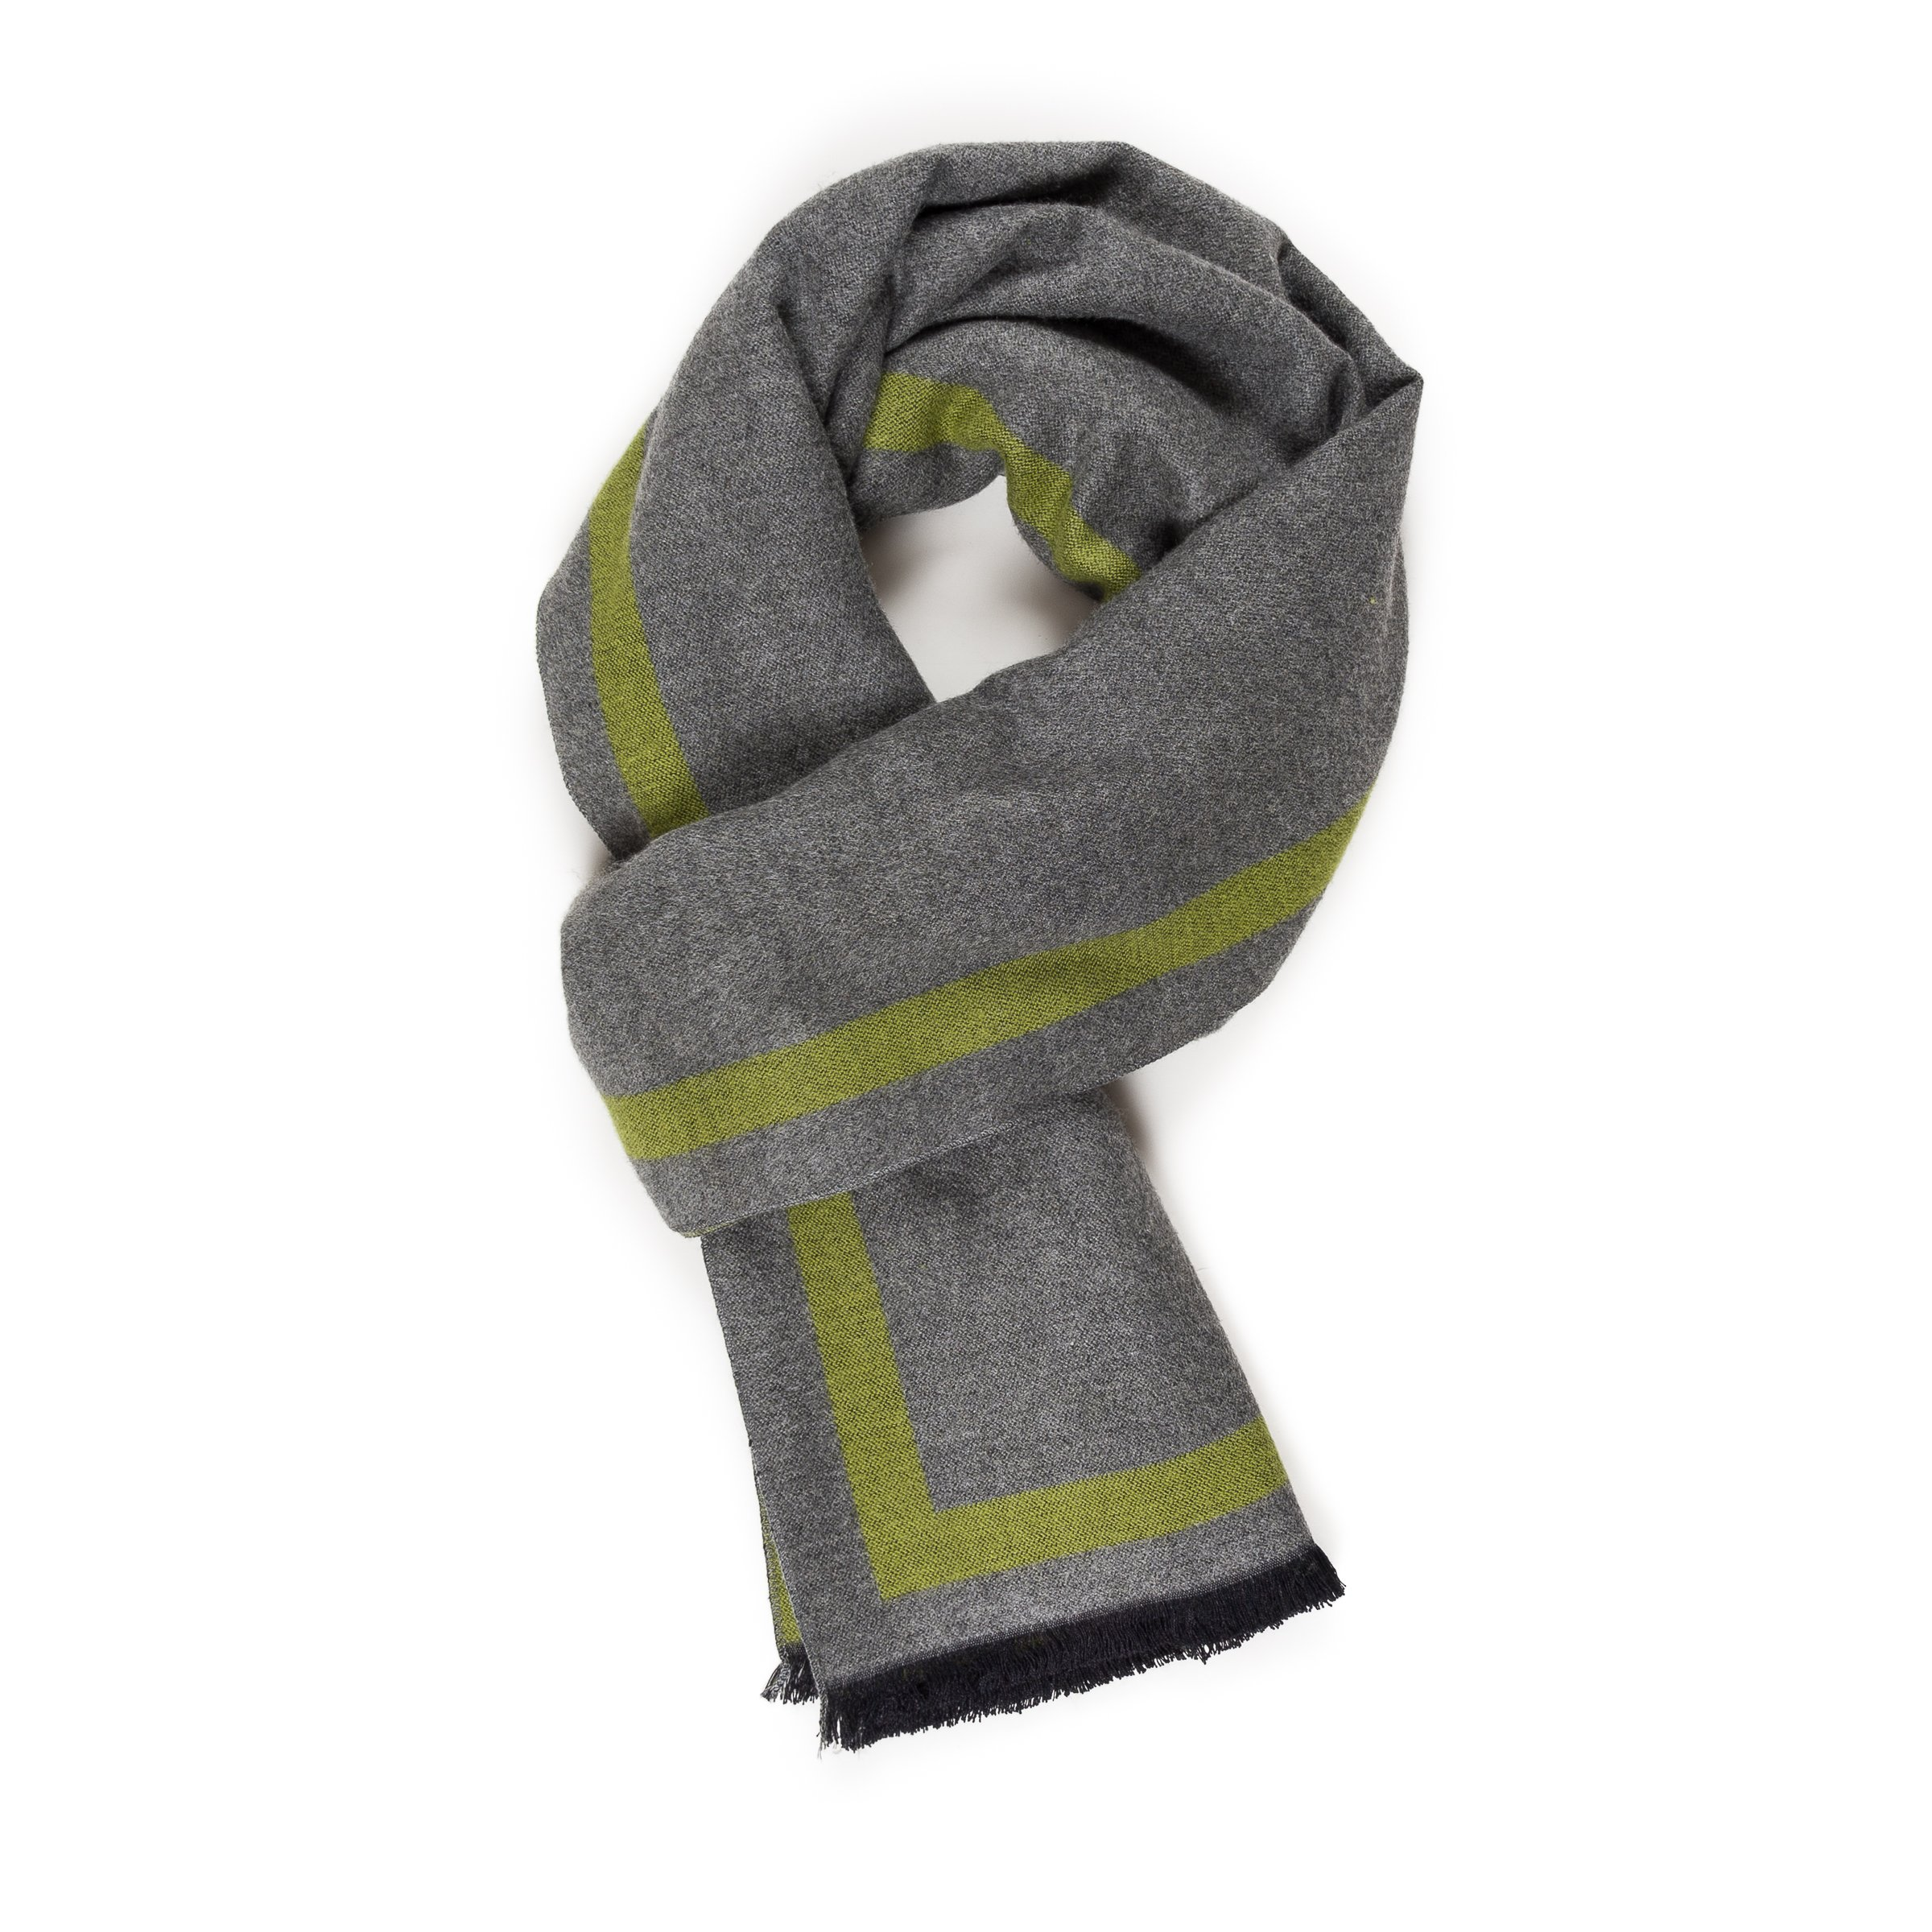 Scarf for Men Spring Winter Cashmere Gray Green Man Soft Elegant Classic Scarves by Melifluos (Gray Green) by MELIFLUOS DESIGNED IN SPAIN